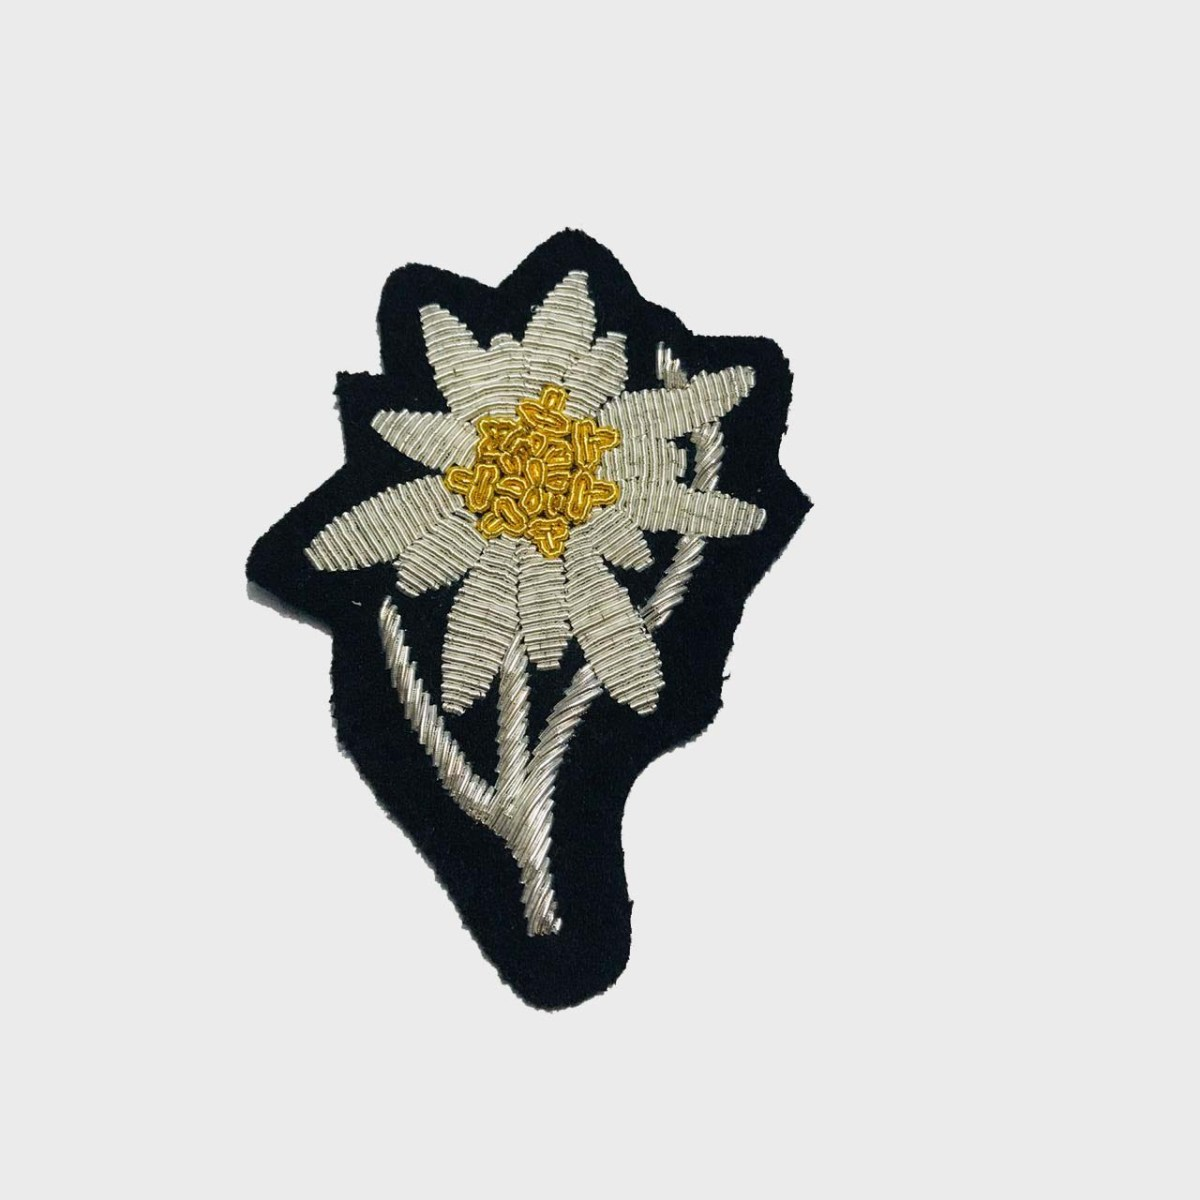 Edelweiss Flower Bullion Embroidered Badge , Sew-on Applique Patch - Edelweiss EmbroideredPatch Size # 3inches Sew-on backing Silverbullion wires embroidered on felt  5